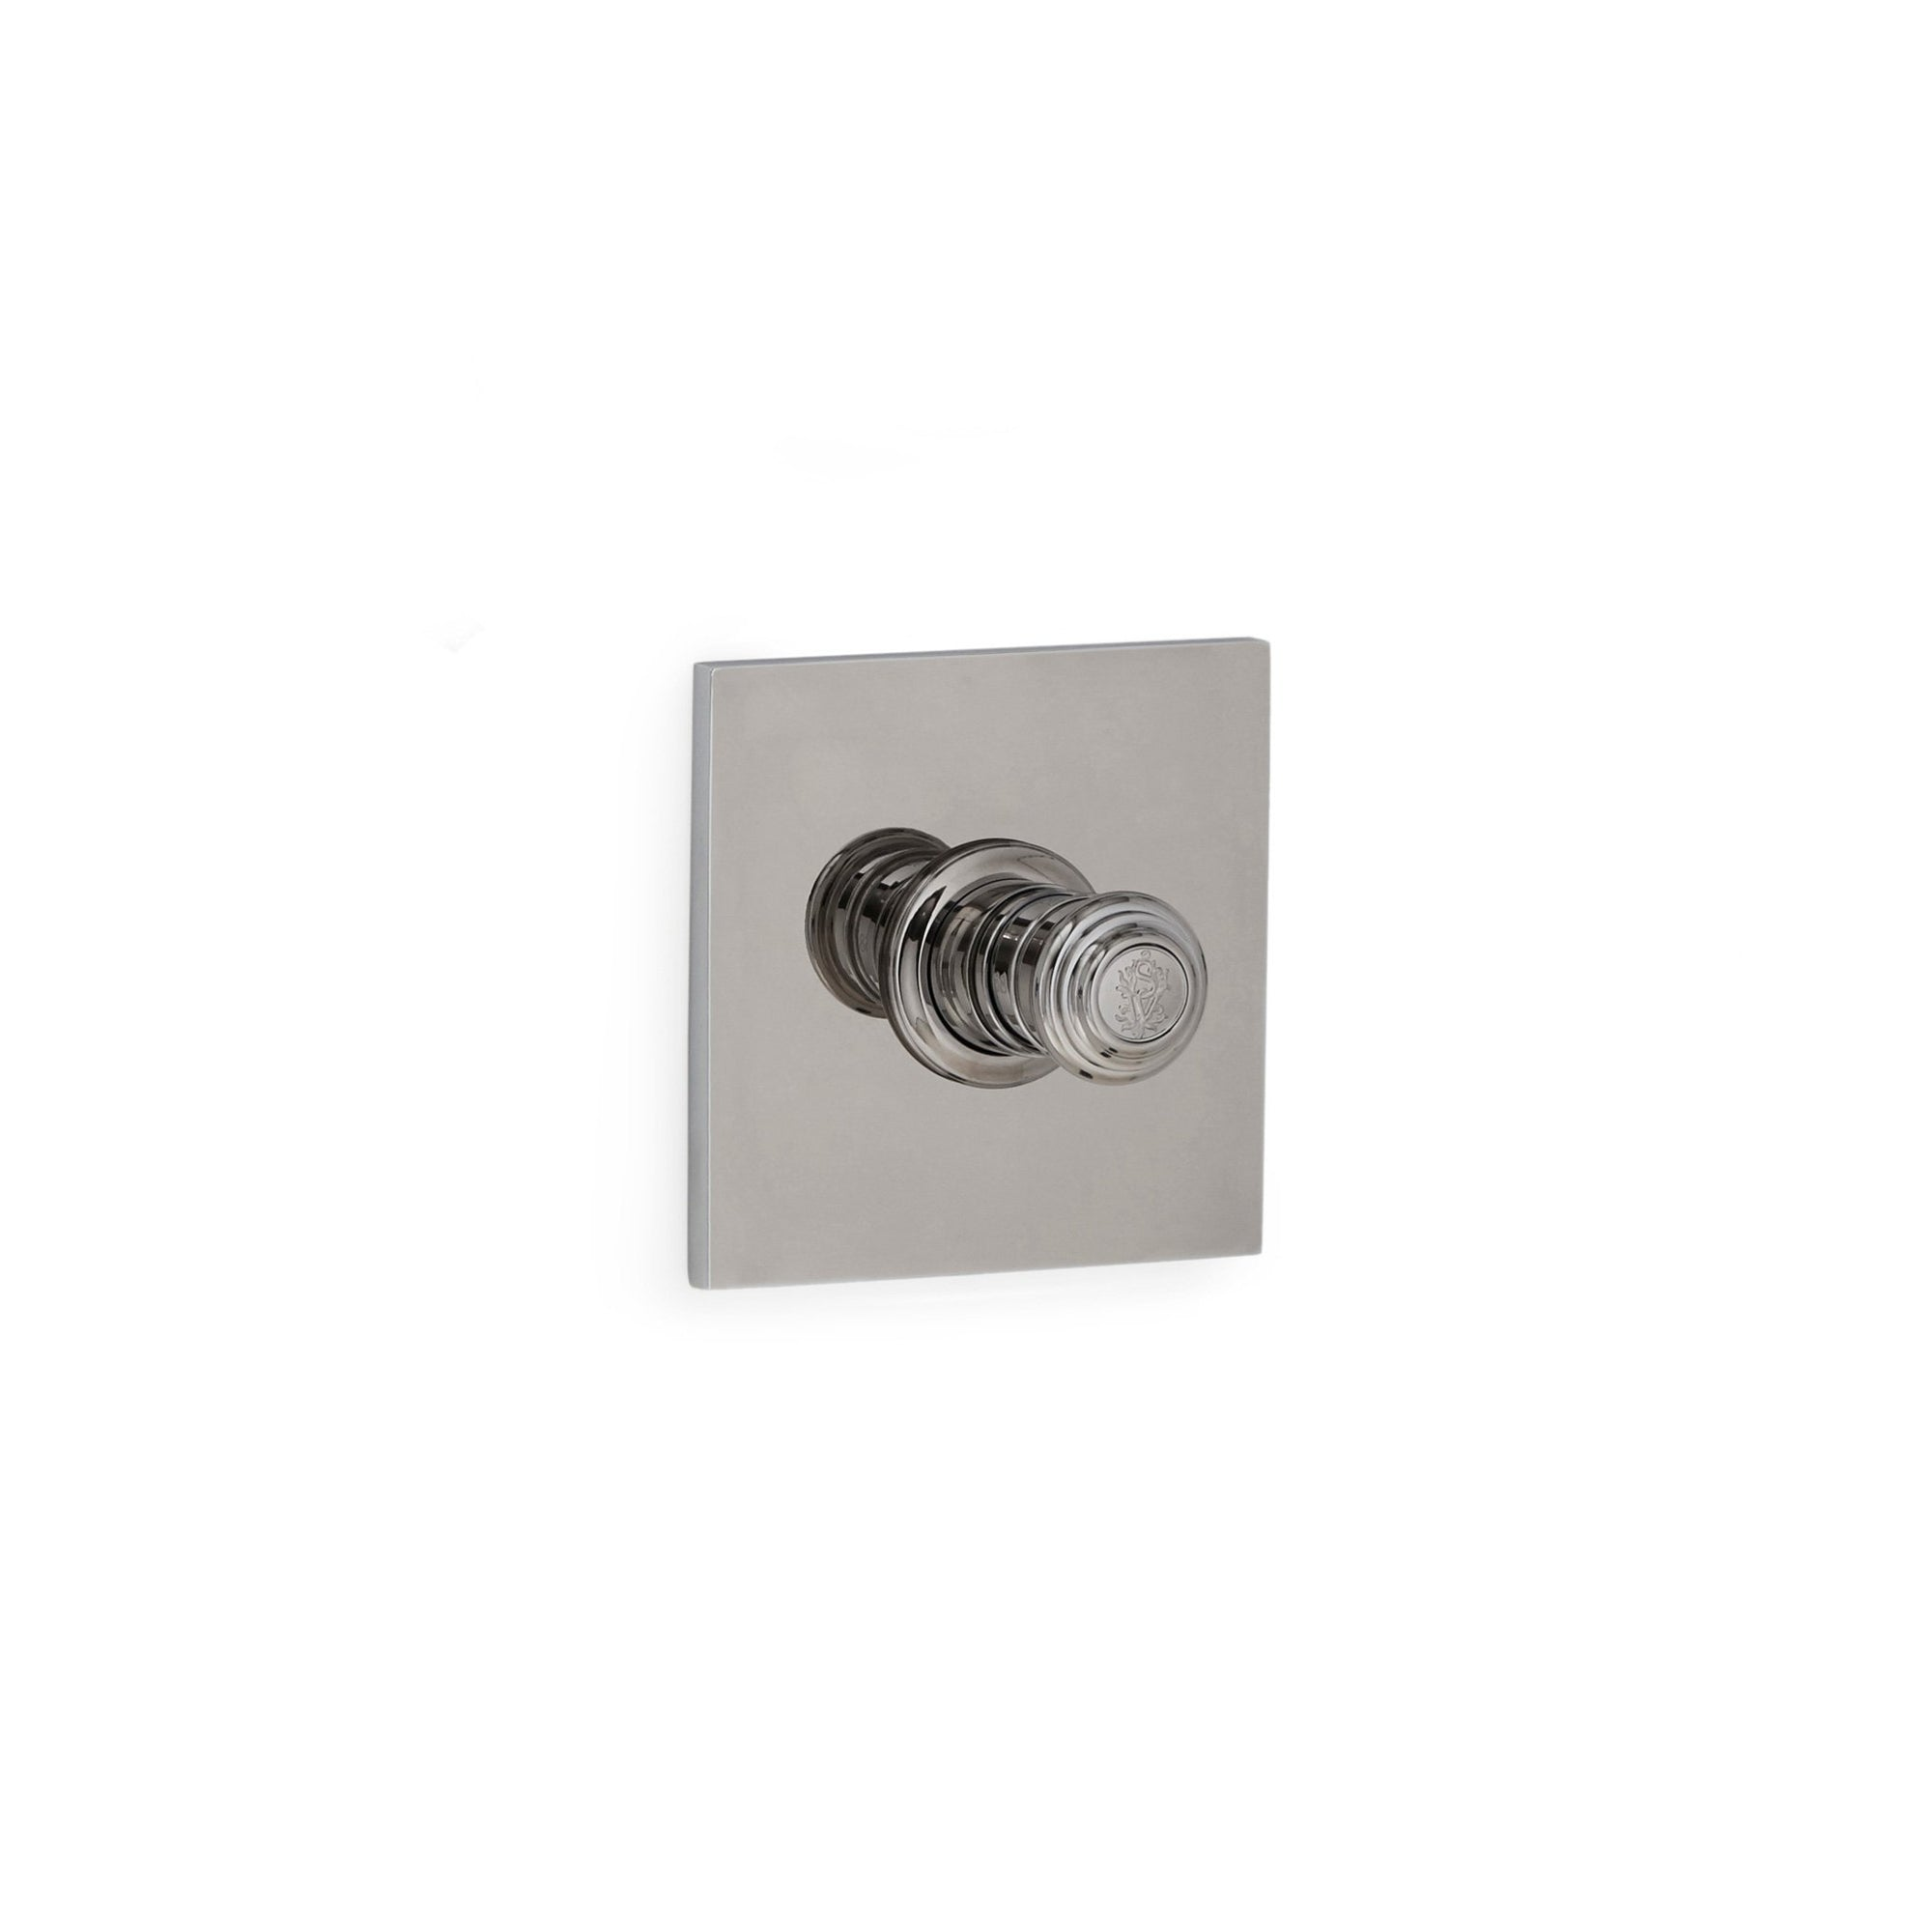 TMO09PL-LOGO-CP Sherle Wagner International Modern Square High Flow Thermostatic Trim in Polished Chrome metal finish